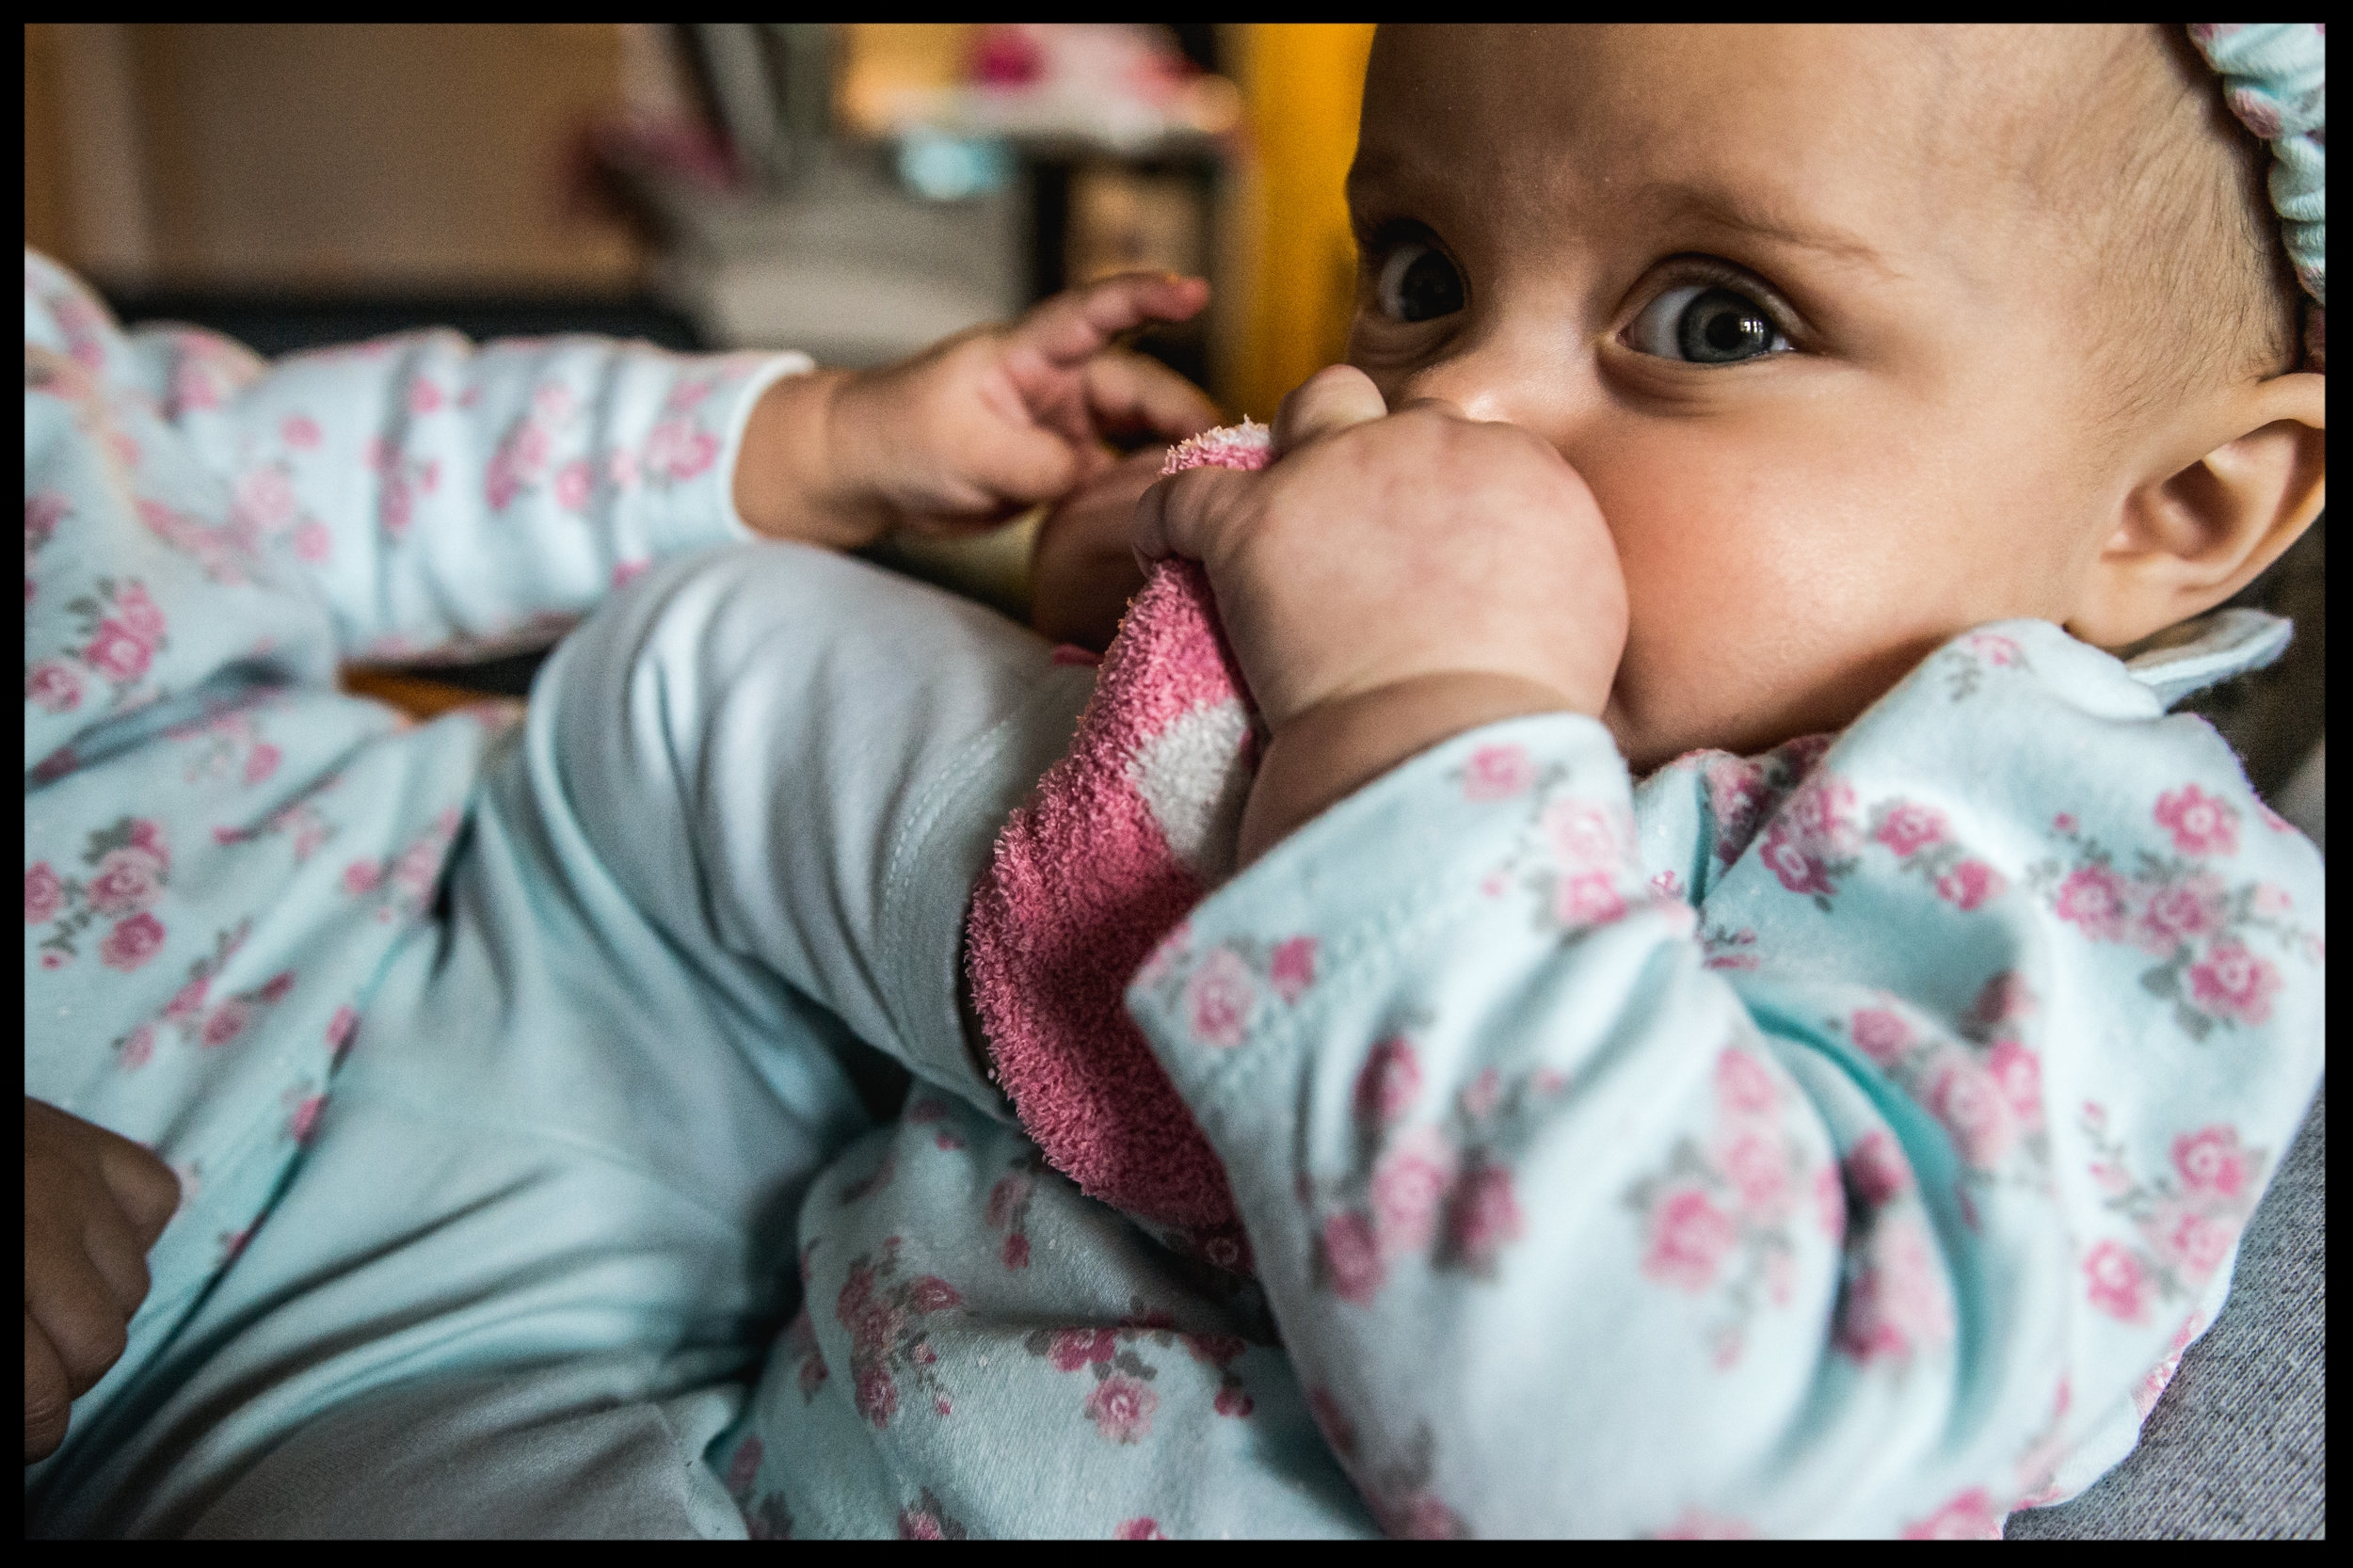 Baby girl chewing on her twin sister's foot, color, Aurora, Colorado